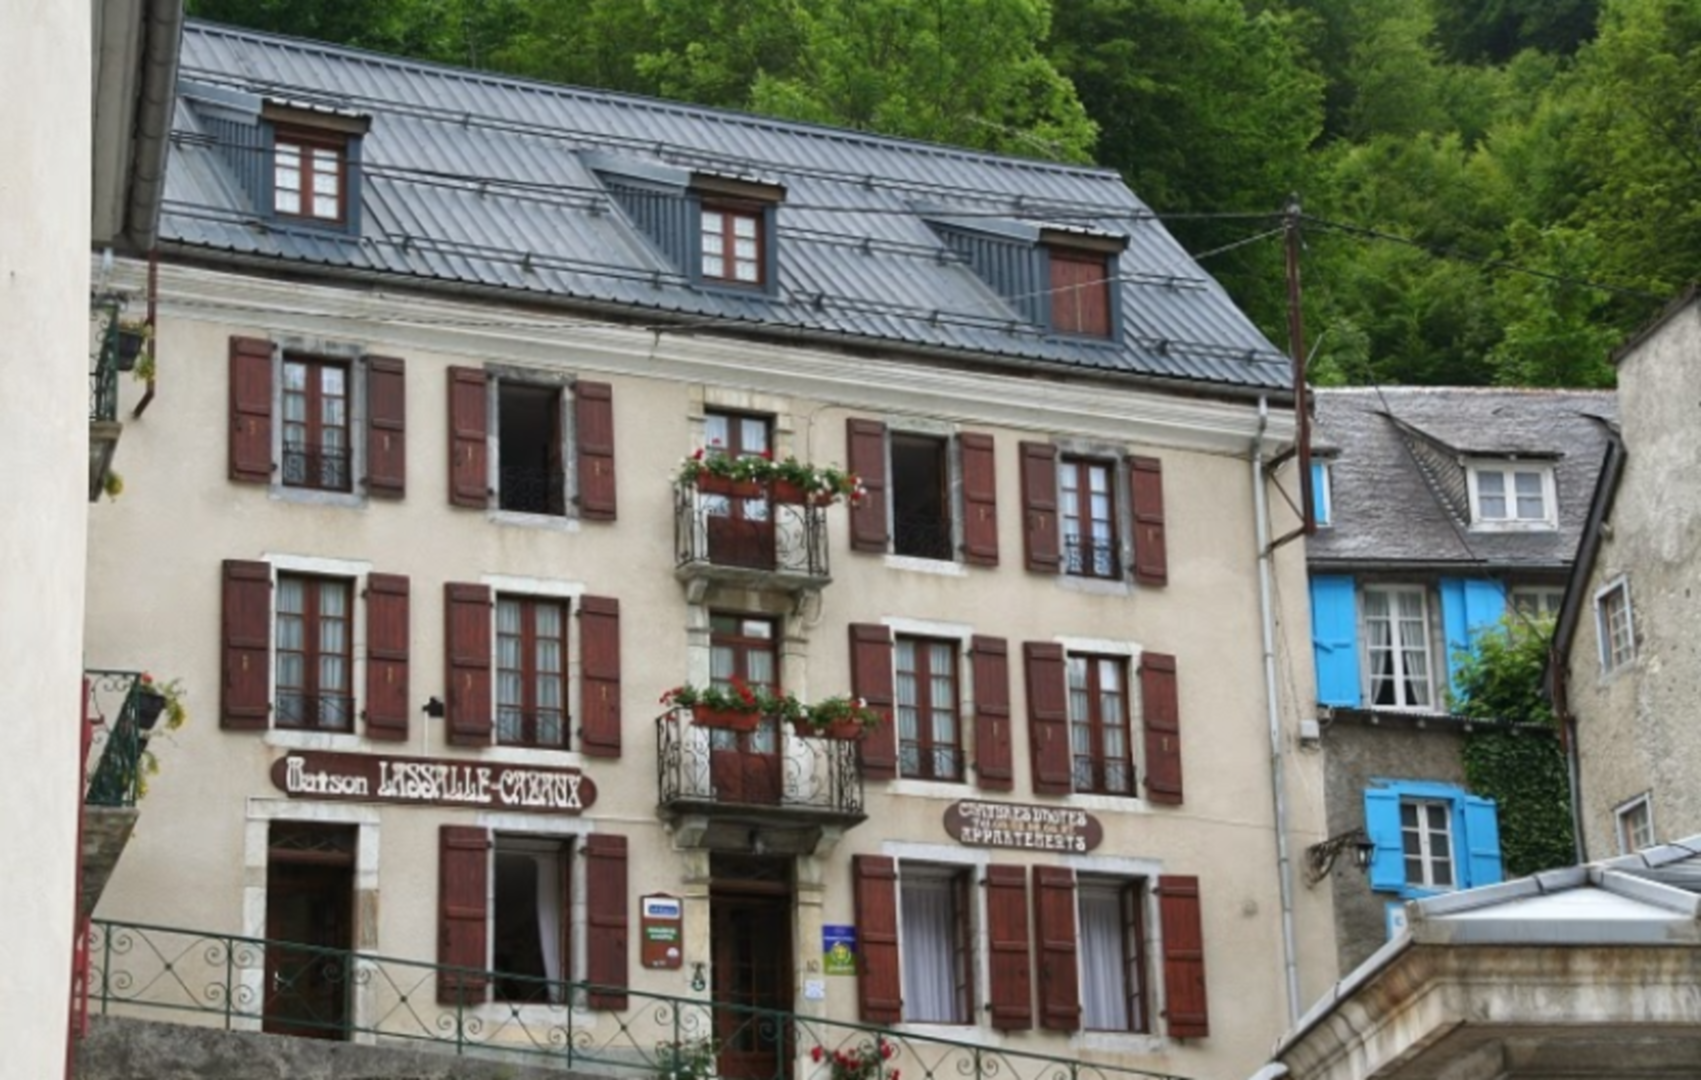 A close up of a street in front of a building at Maison Lassalle Cazaux.